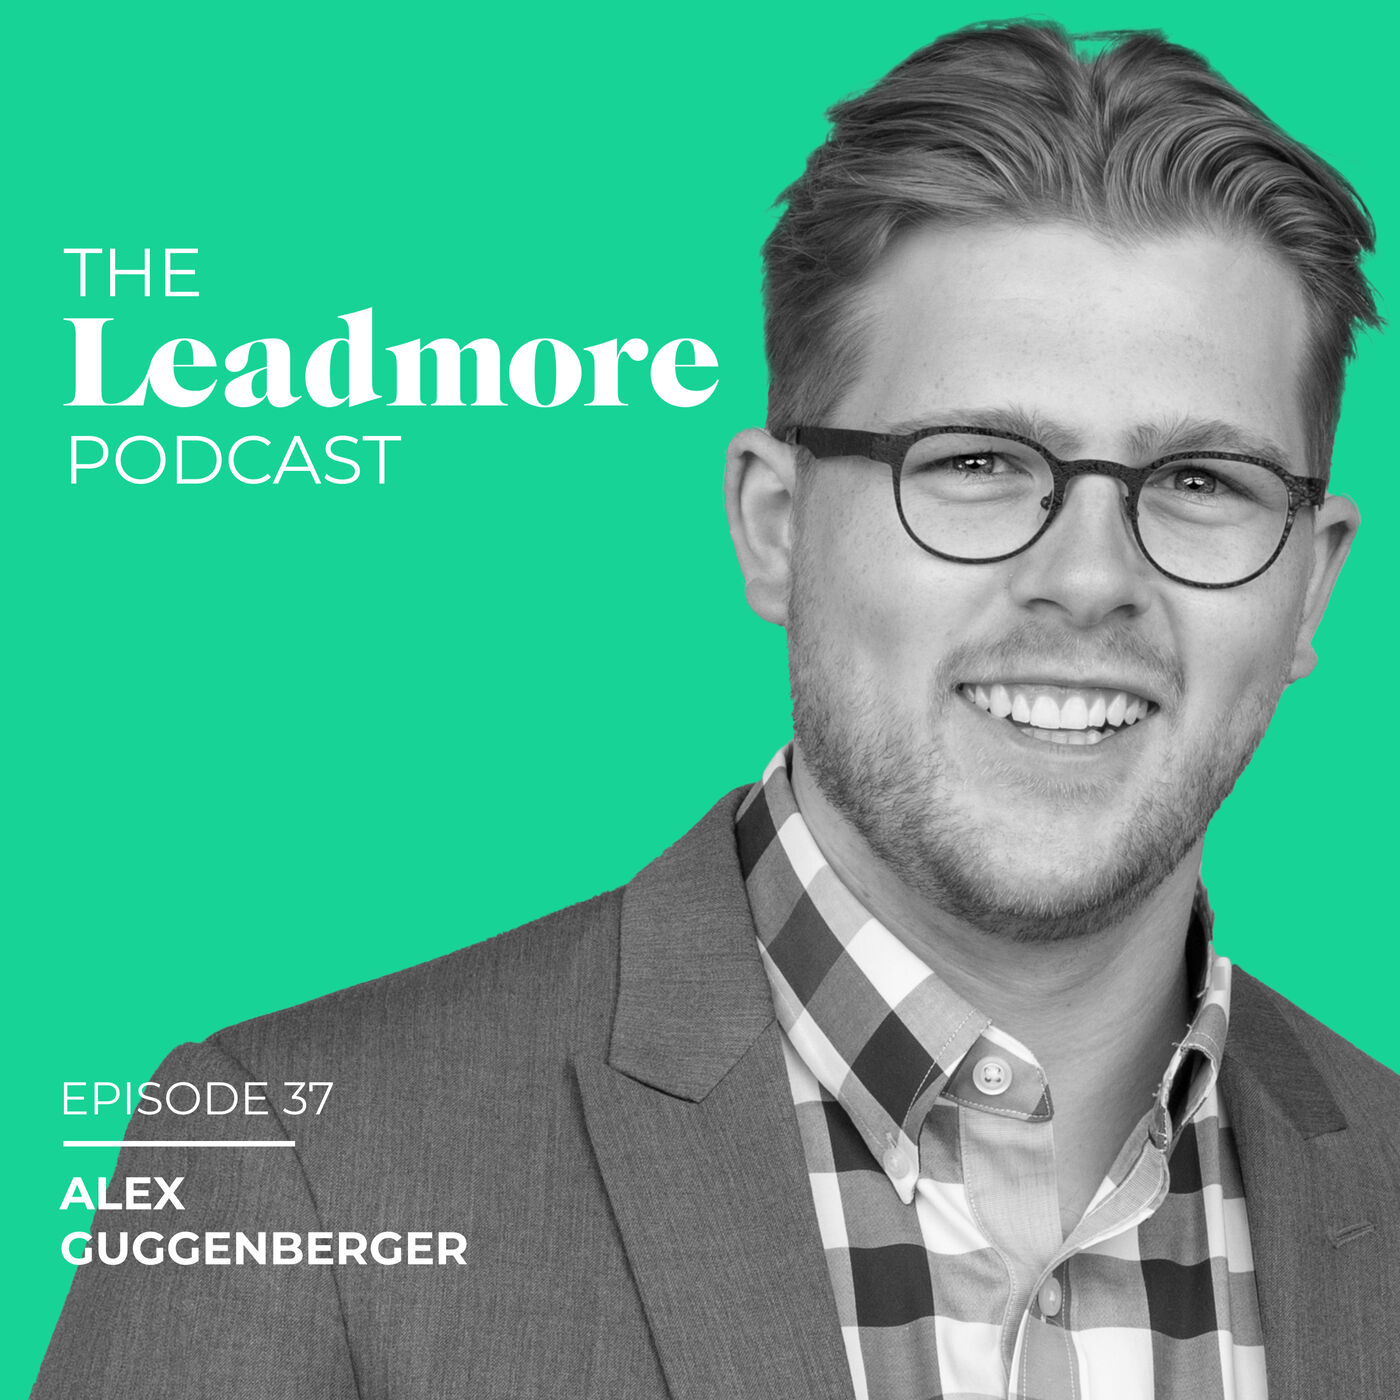 Learning From Leaders Around You with Alex Guggenberger